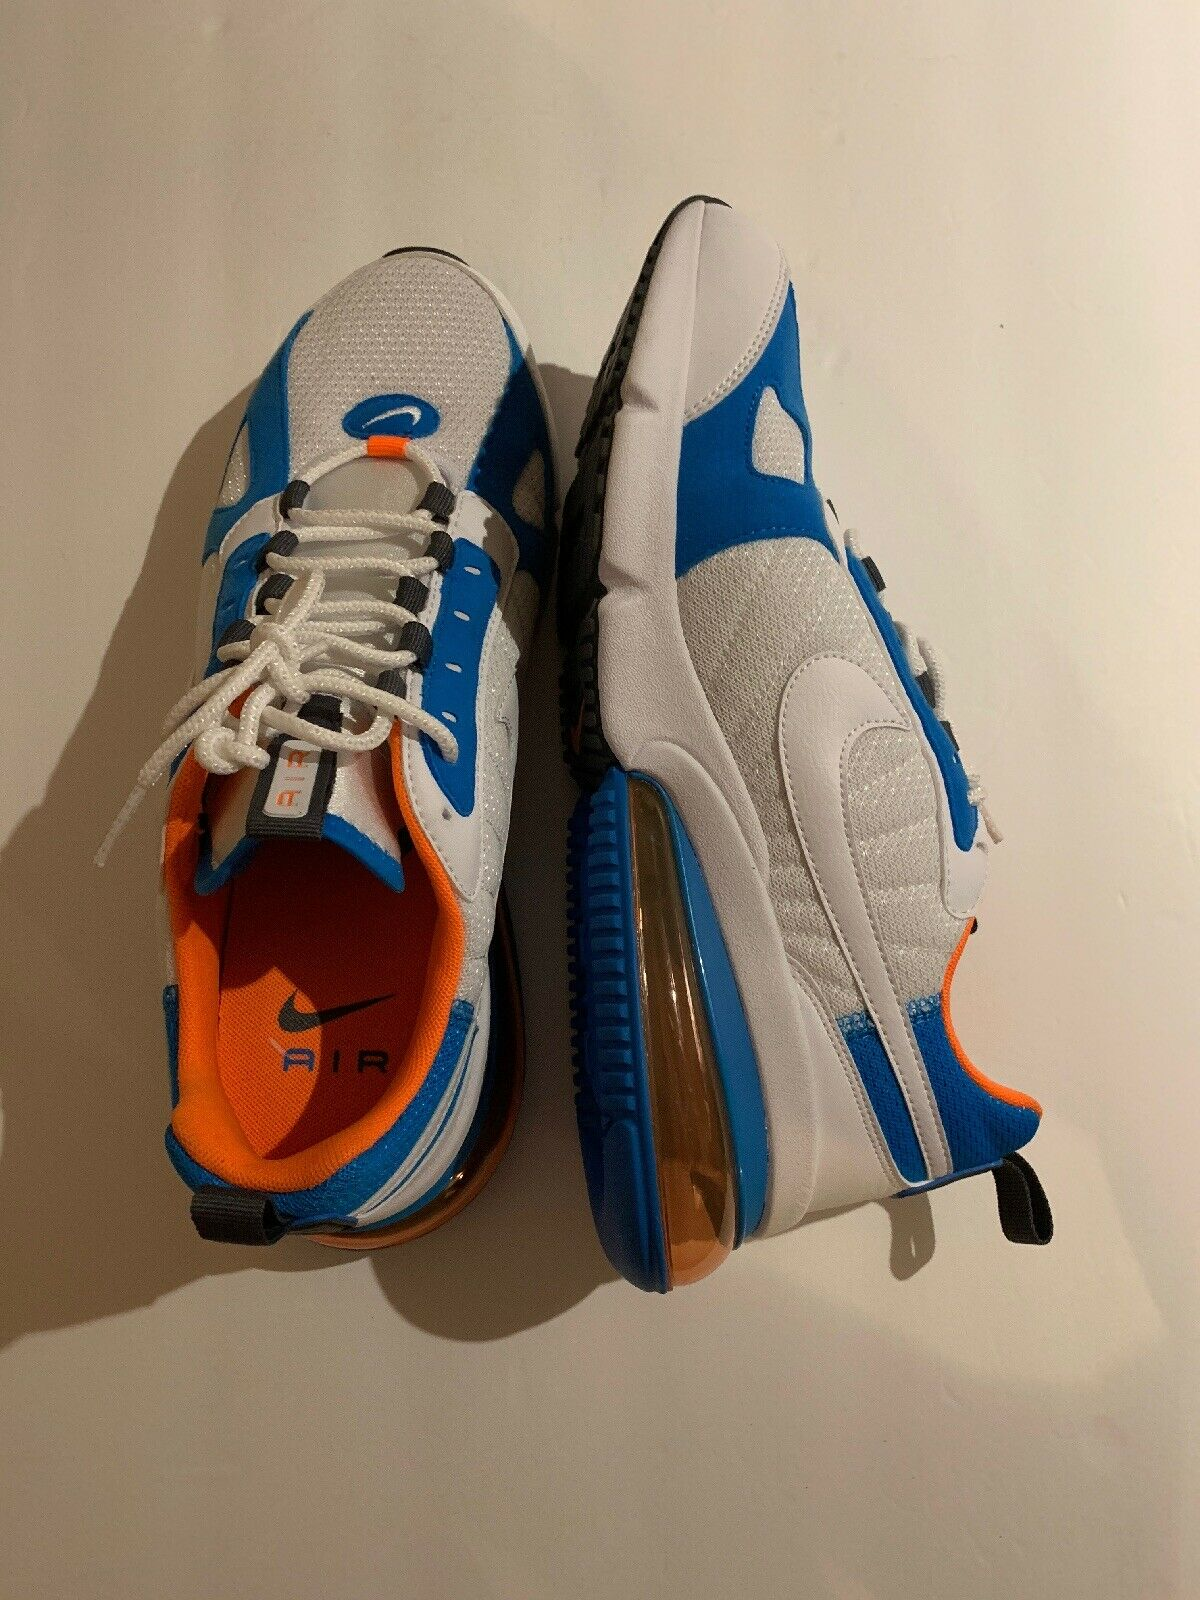 Nike Air Air Air Max 270 Futura Men's shoes bluee White orange Size 13 New 7281c7